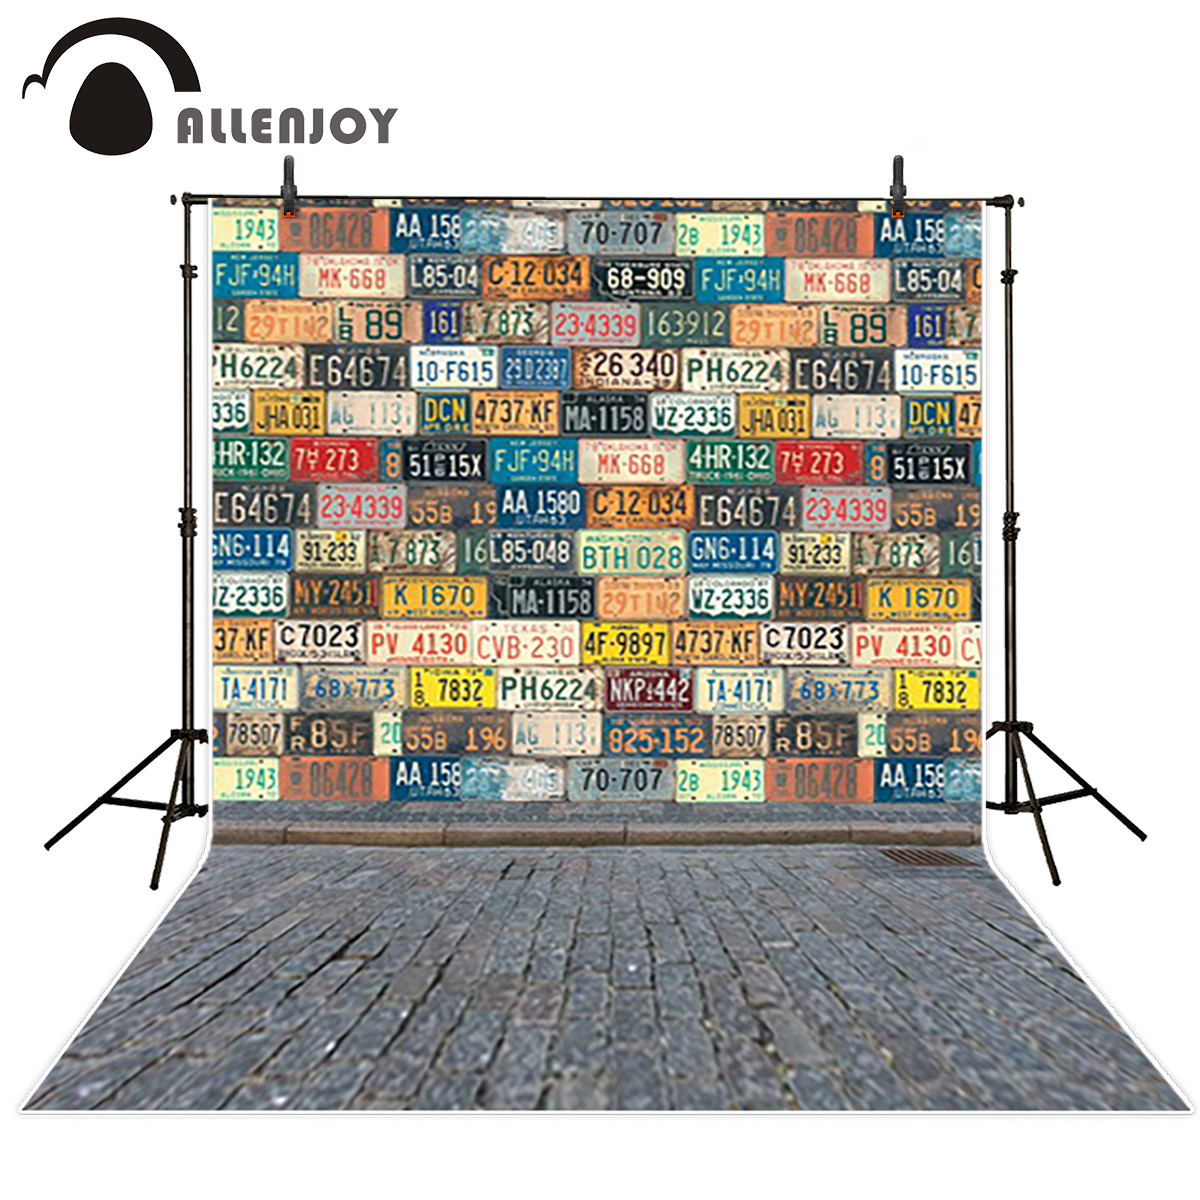 Allenjoy photography backdrops License plates brick floor graffiti cool fond backgrounds for kids backgrounds for photo studio 200cm 150cm backgrounds brick floor booth walls photography backdrops photo lk 1581